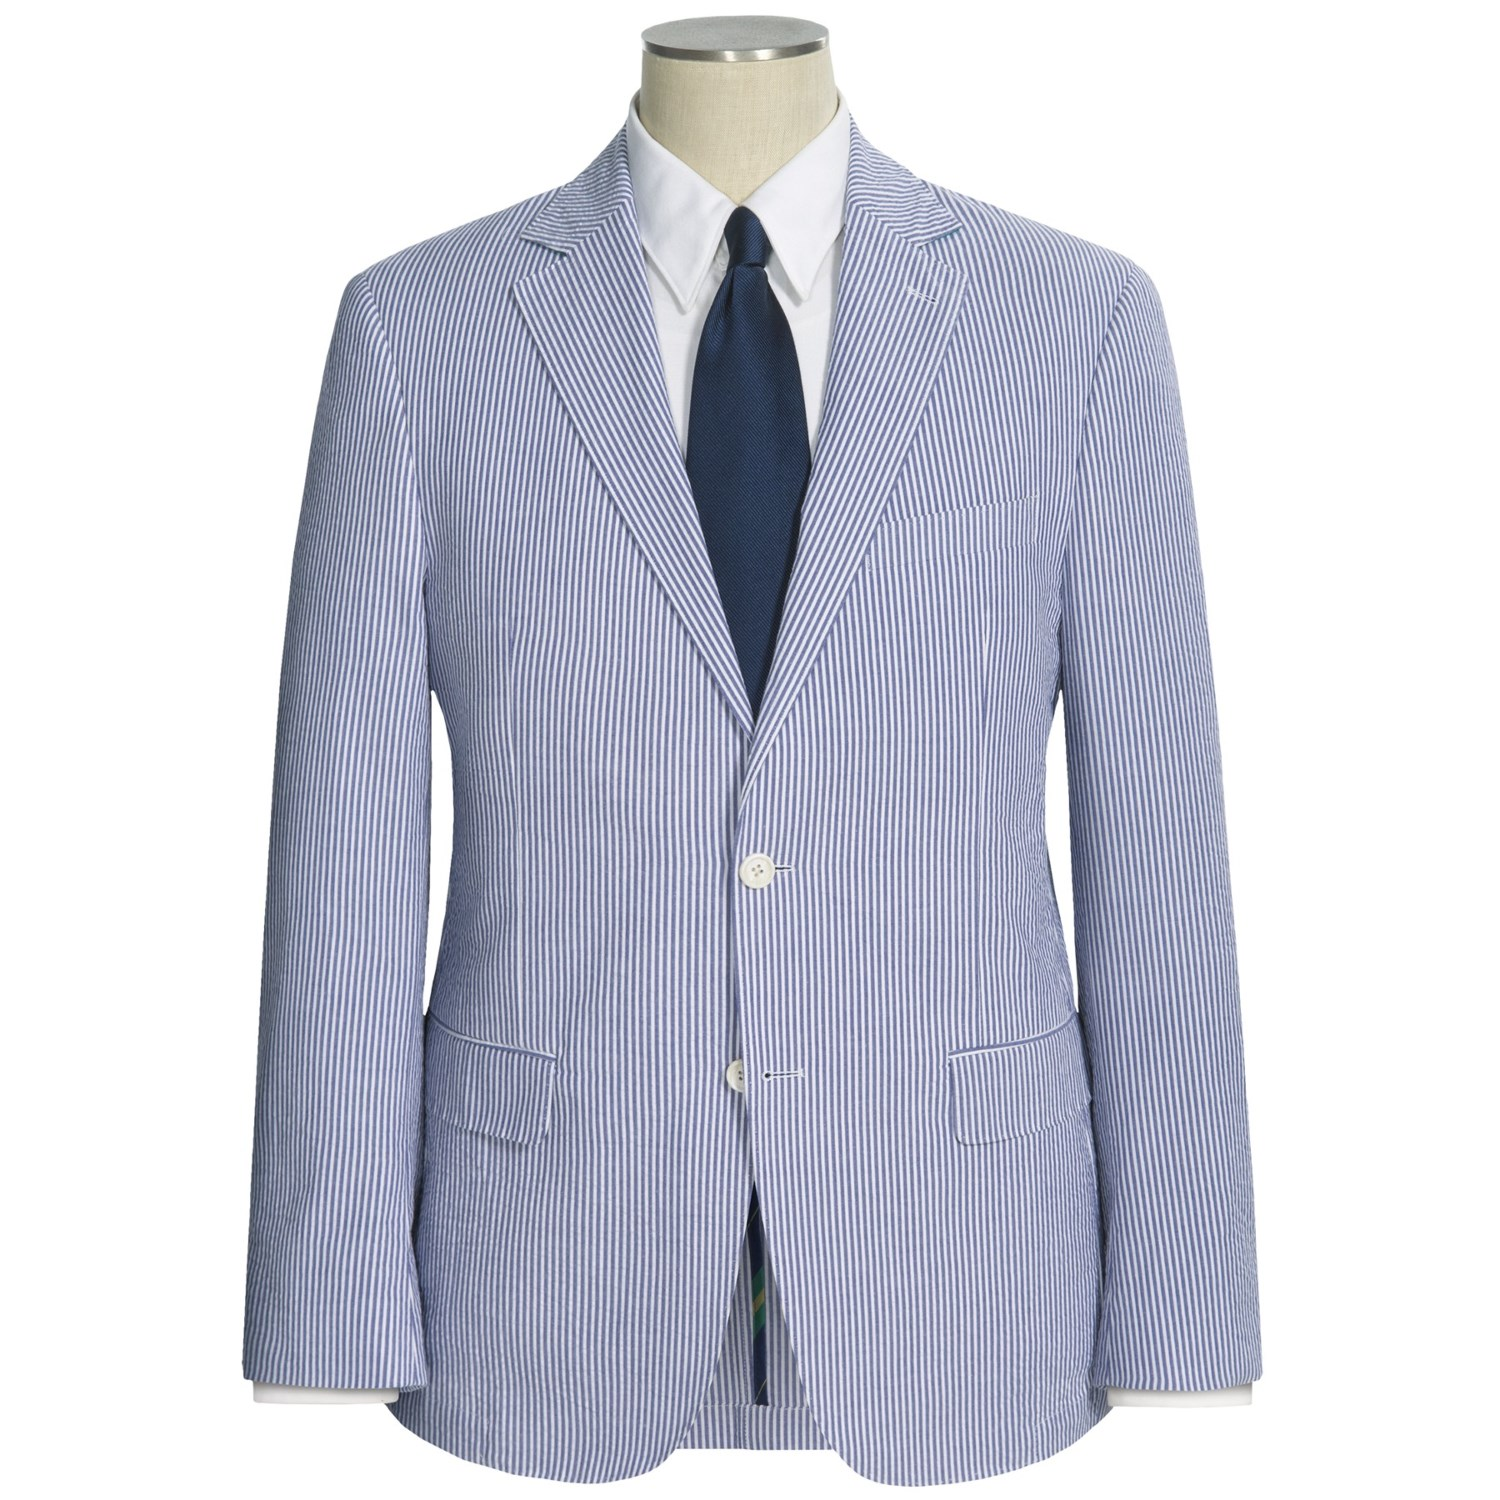 Our men's blue striped seersucker two-button suit is made from pure cotton seersucker. Our Regular Fit is favored for its relaxed fit. Imported/5(3).